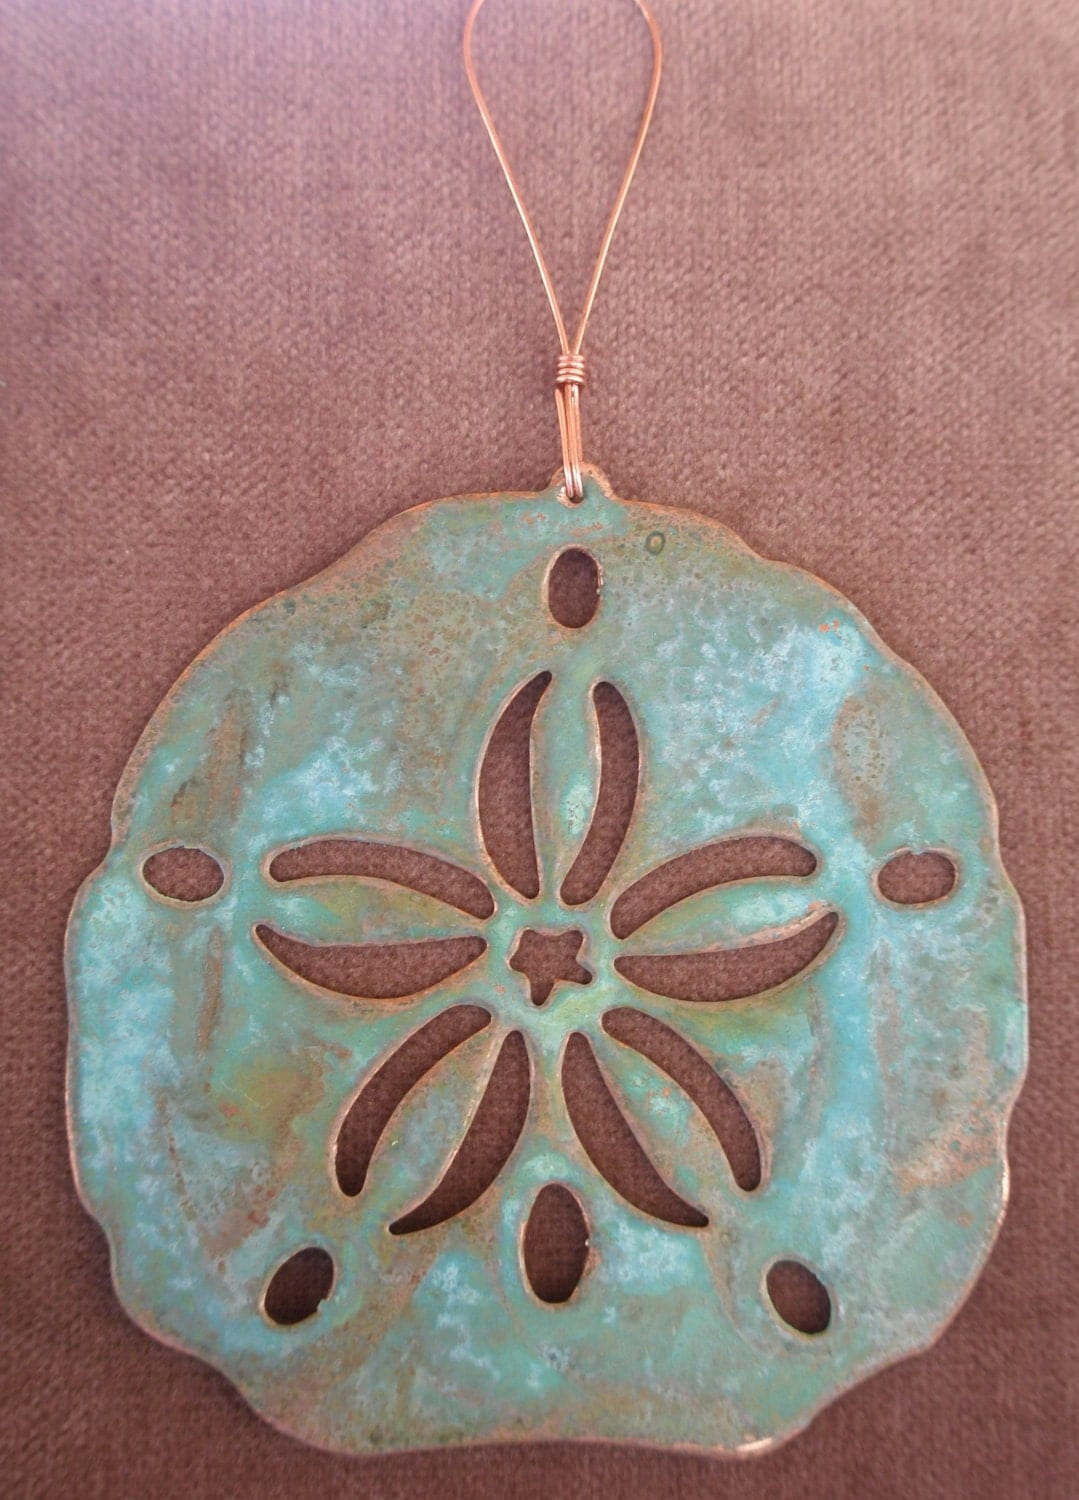 SAND DOLLAR Copper Verdigris Ornament - Handcrafted in The Copper State (Arizona USA)